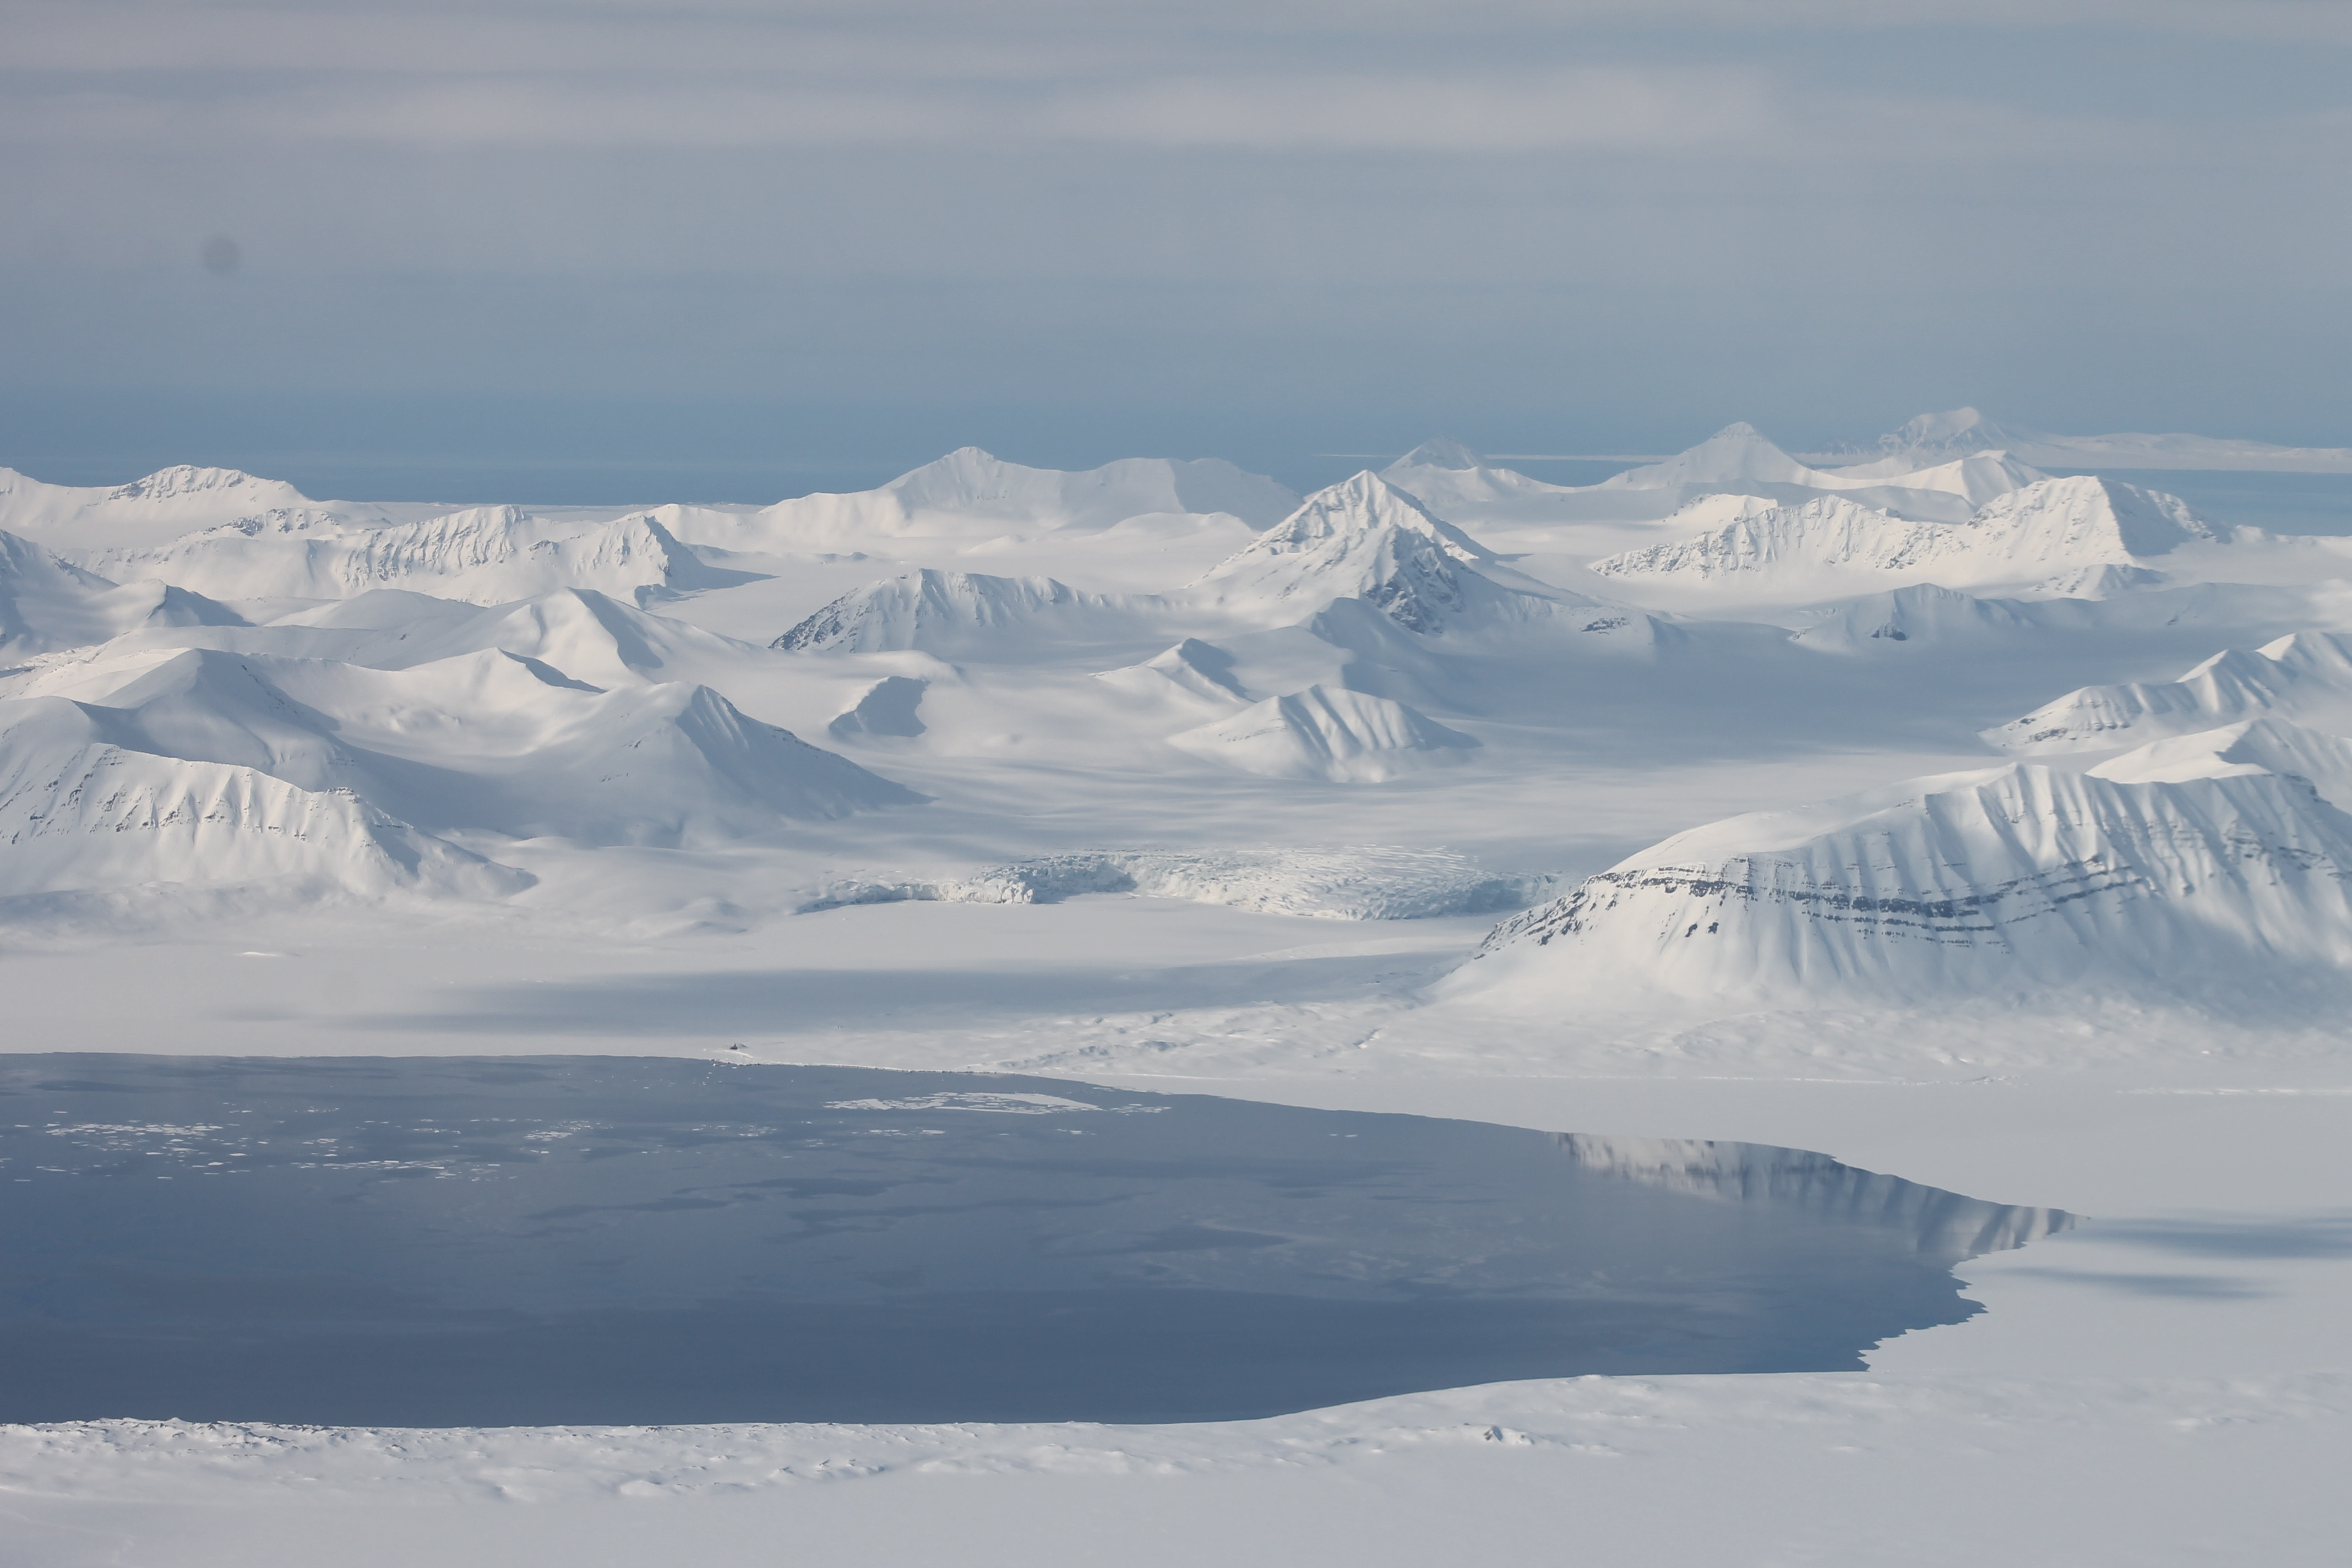 Svalbard, in the Arctic, has undergone substantial warming in recent decades. Retreating glaciers have exposed soil and increased microbial activity.